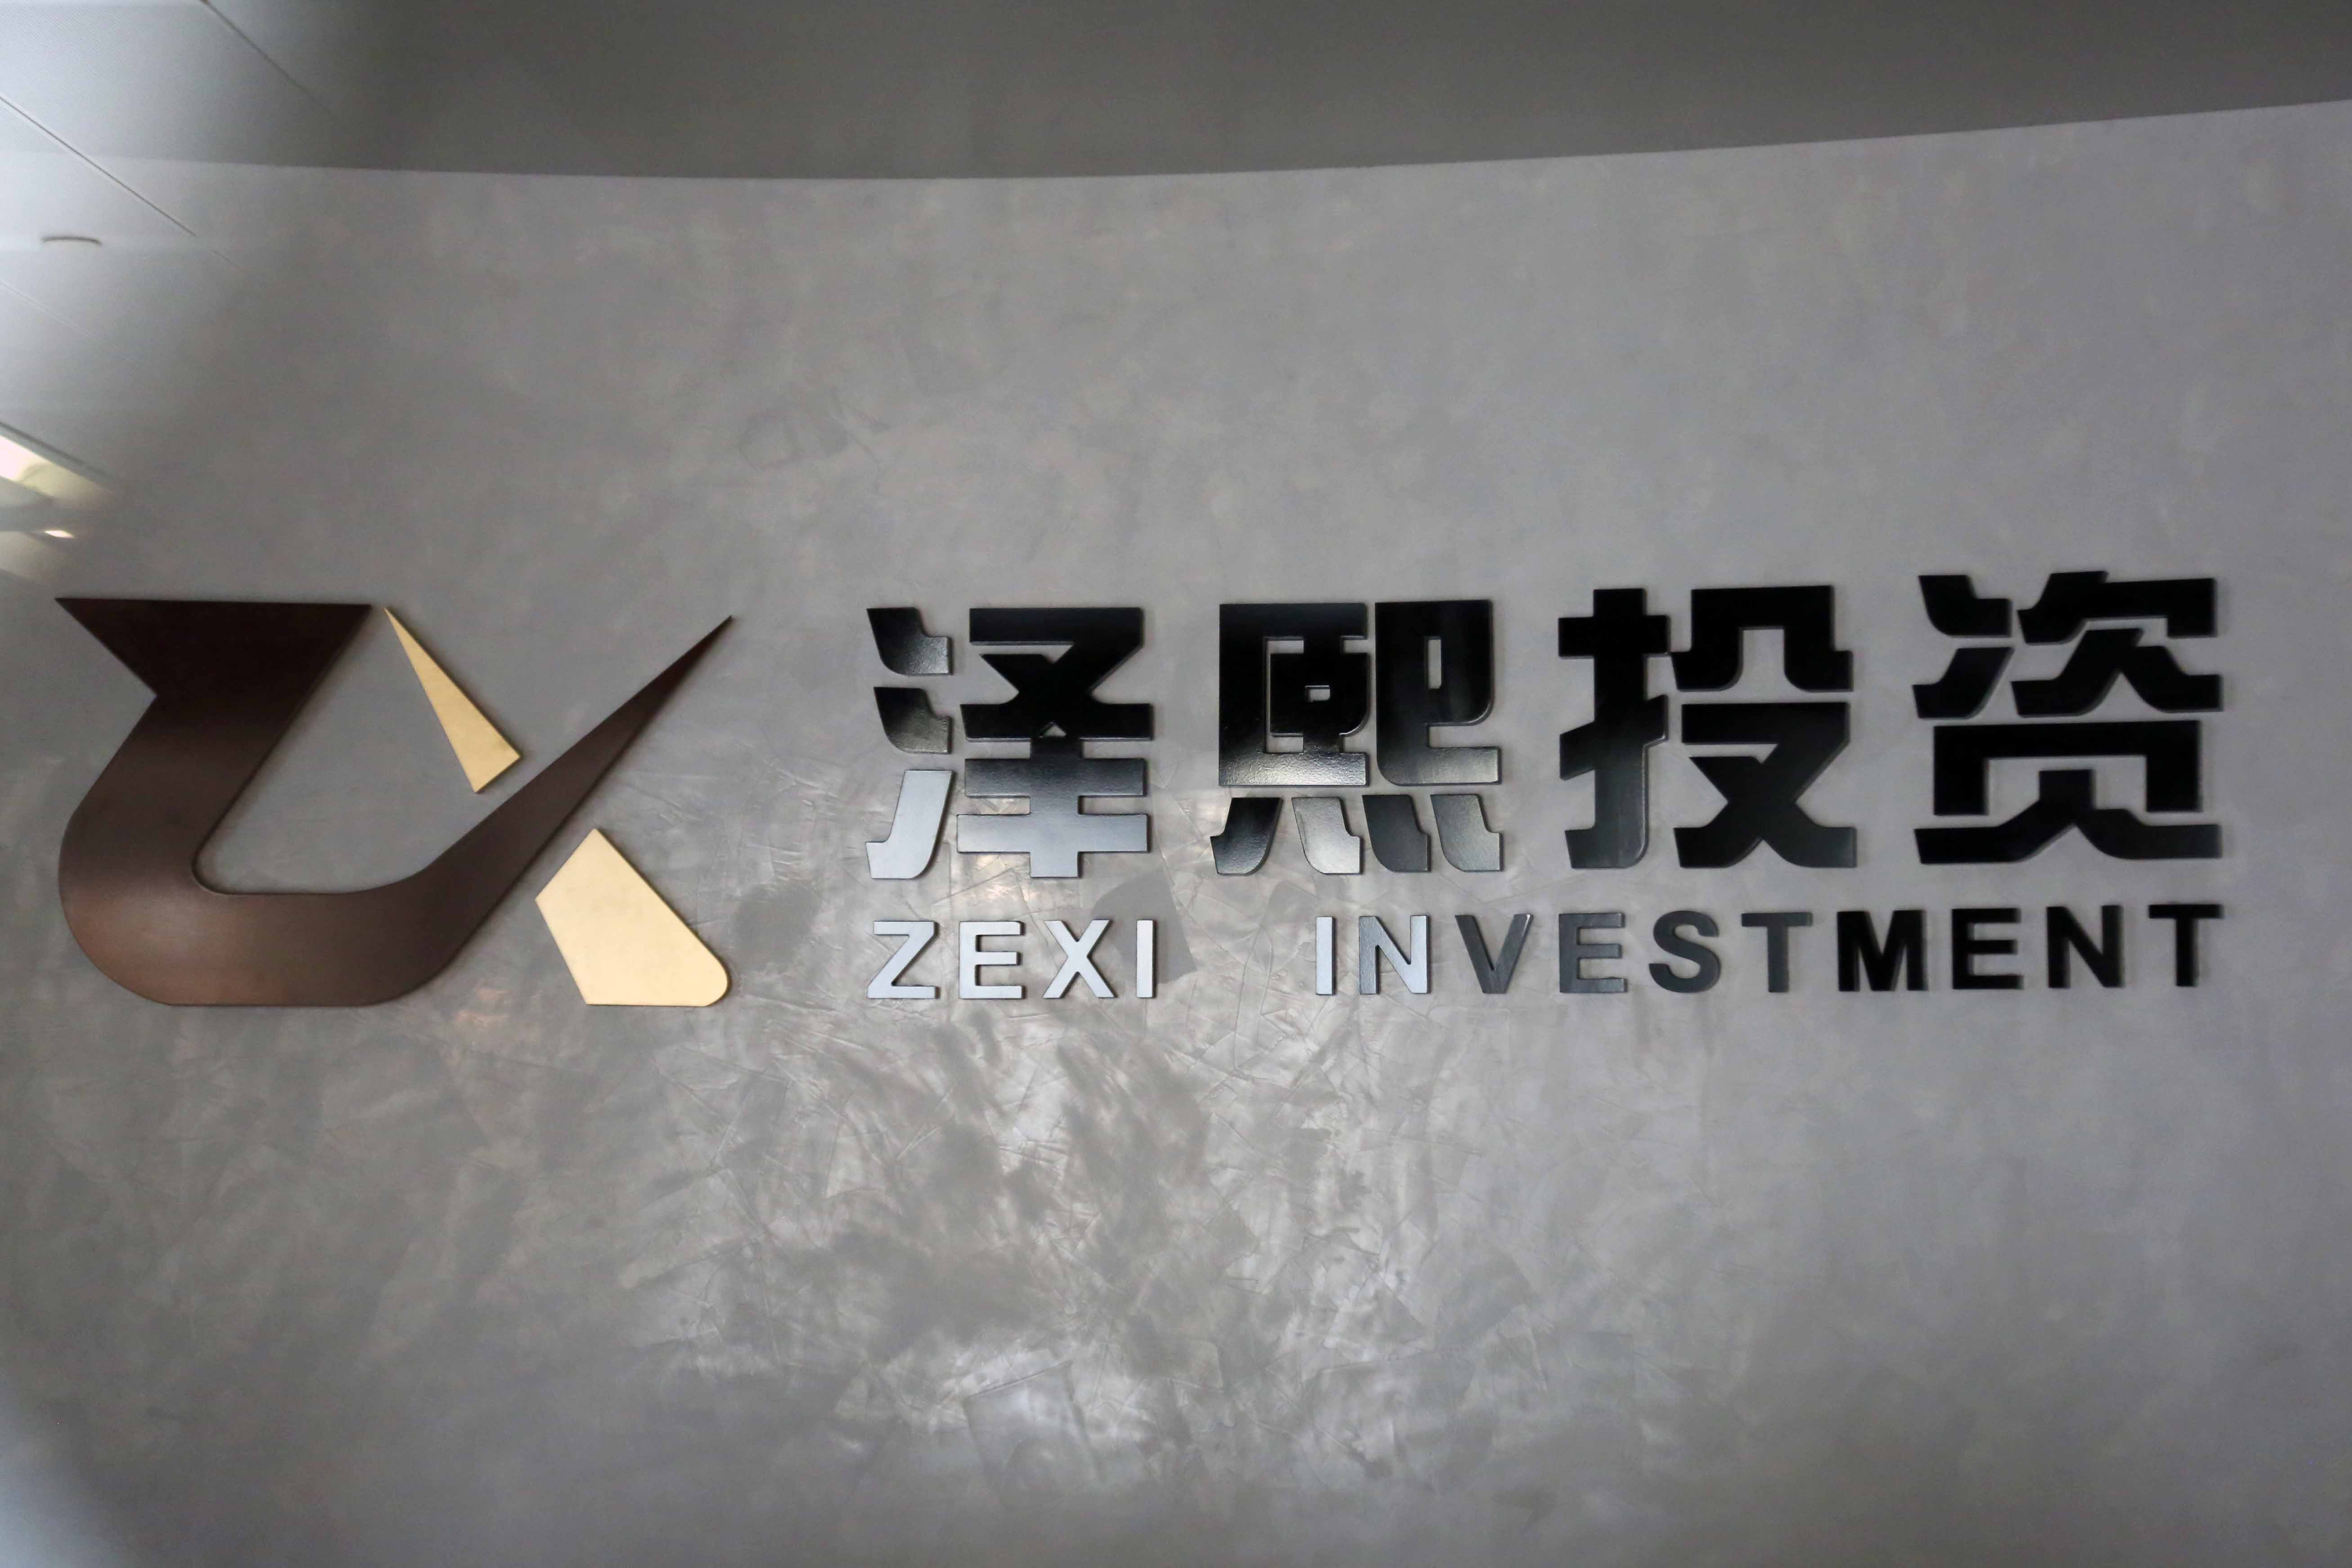 Top China investor, foreigners snared in Beijing's crackdown